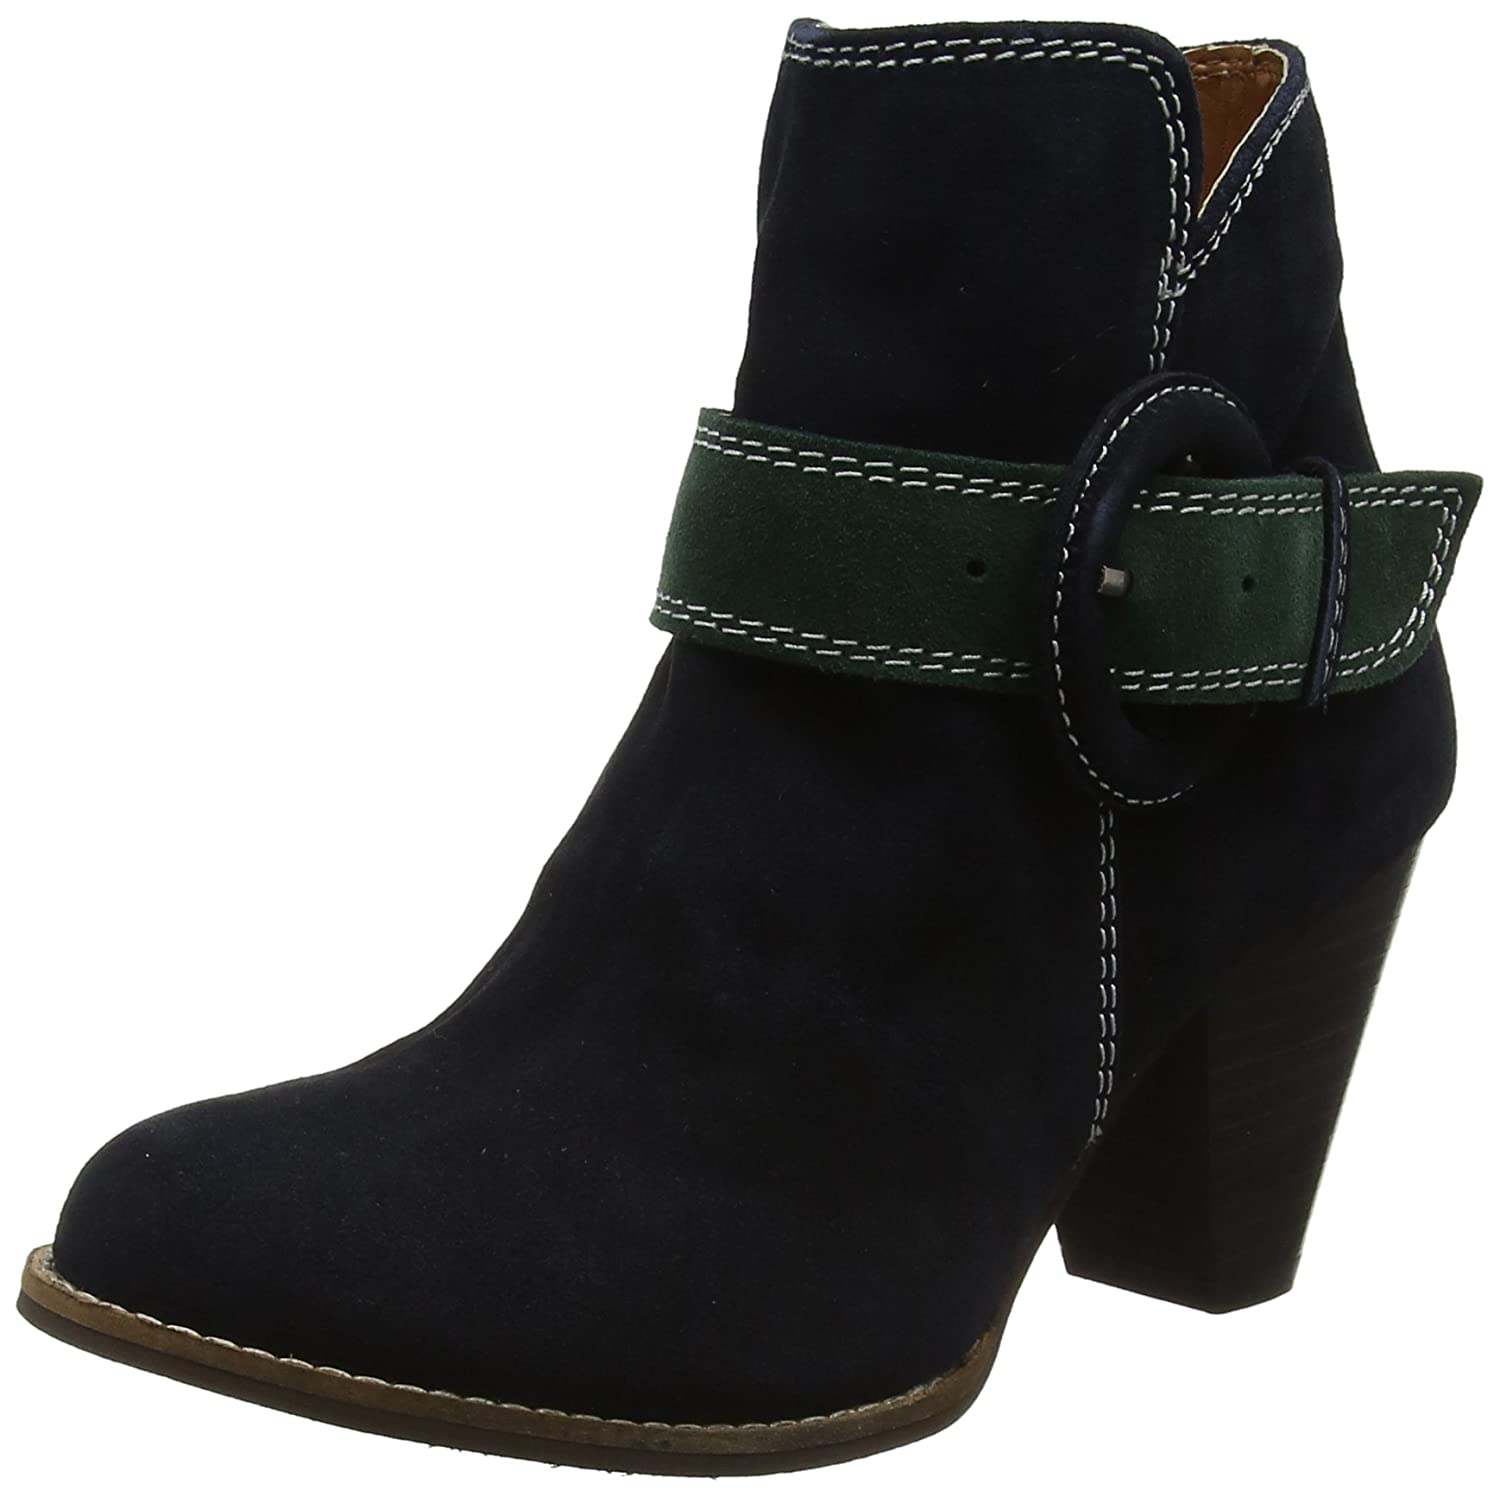 9a83a21cca20 Joe Browns Women s Suede Heeled Ankle Boots  Amazon.co.uk  Shoes   Bags